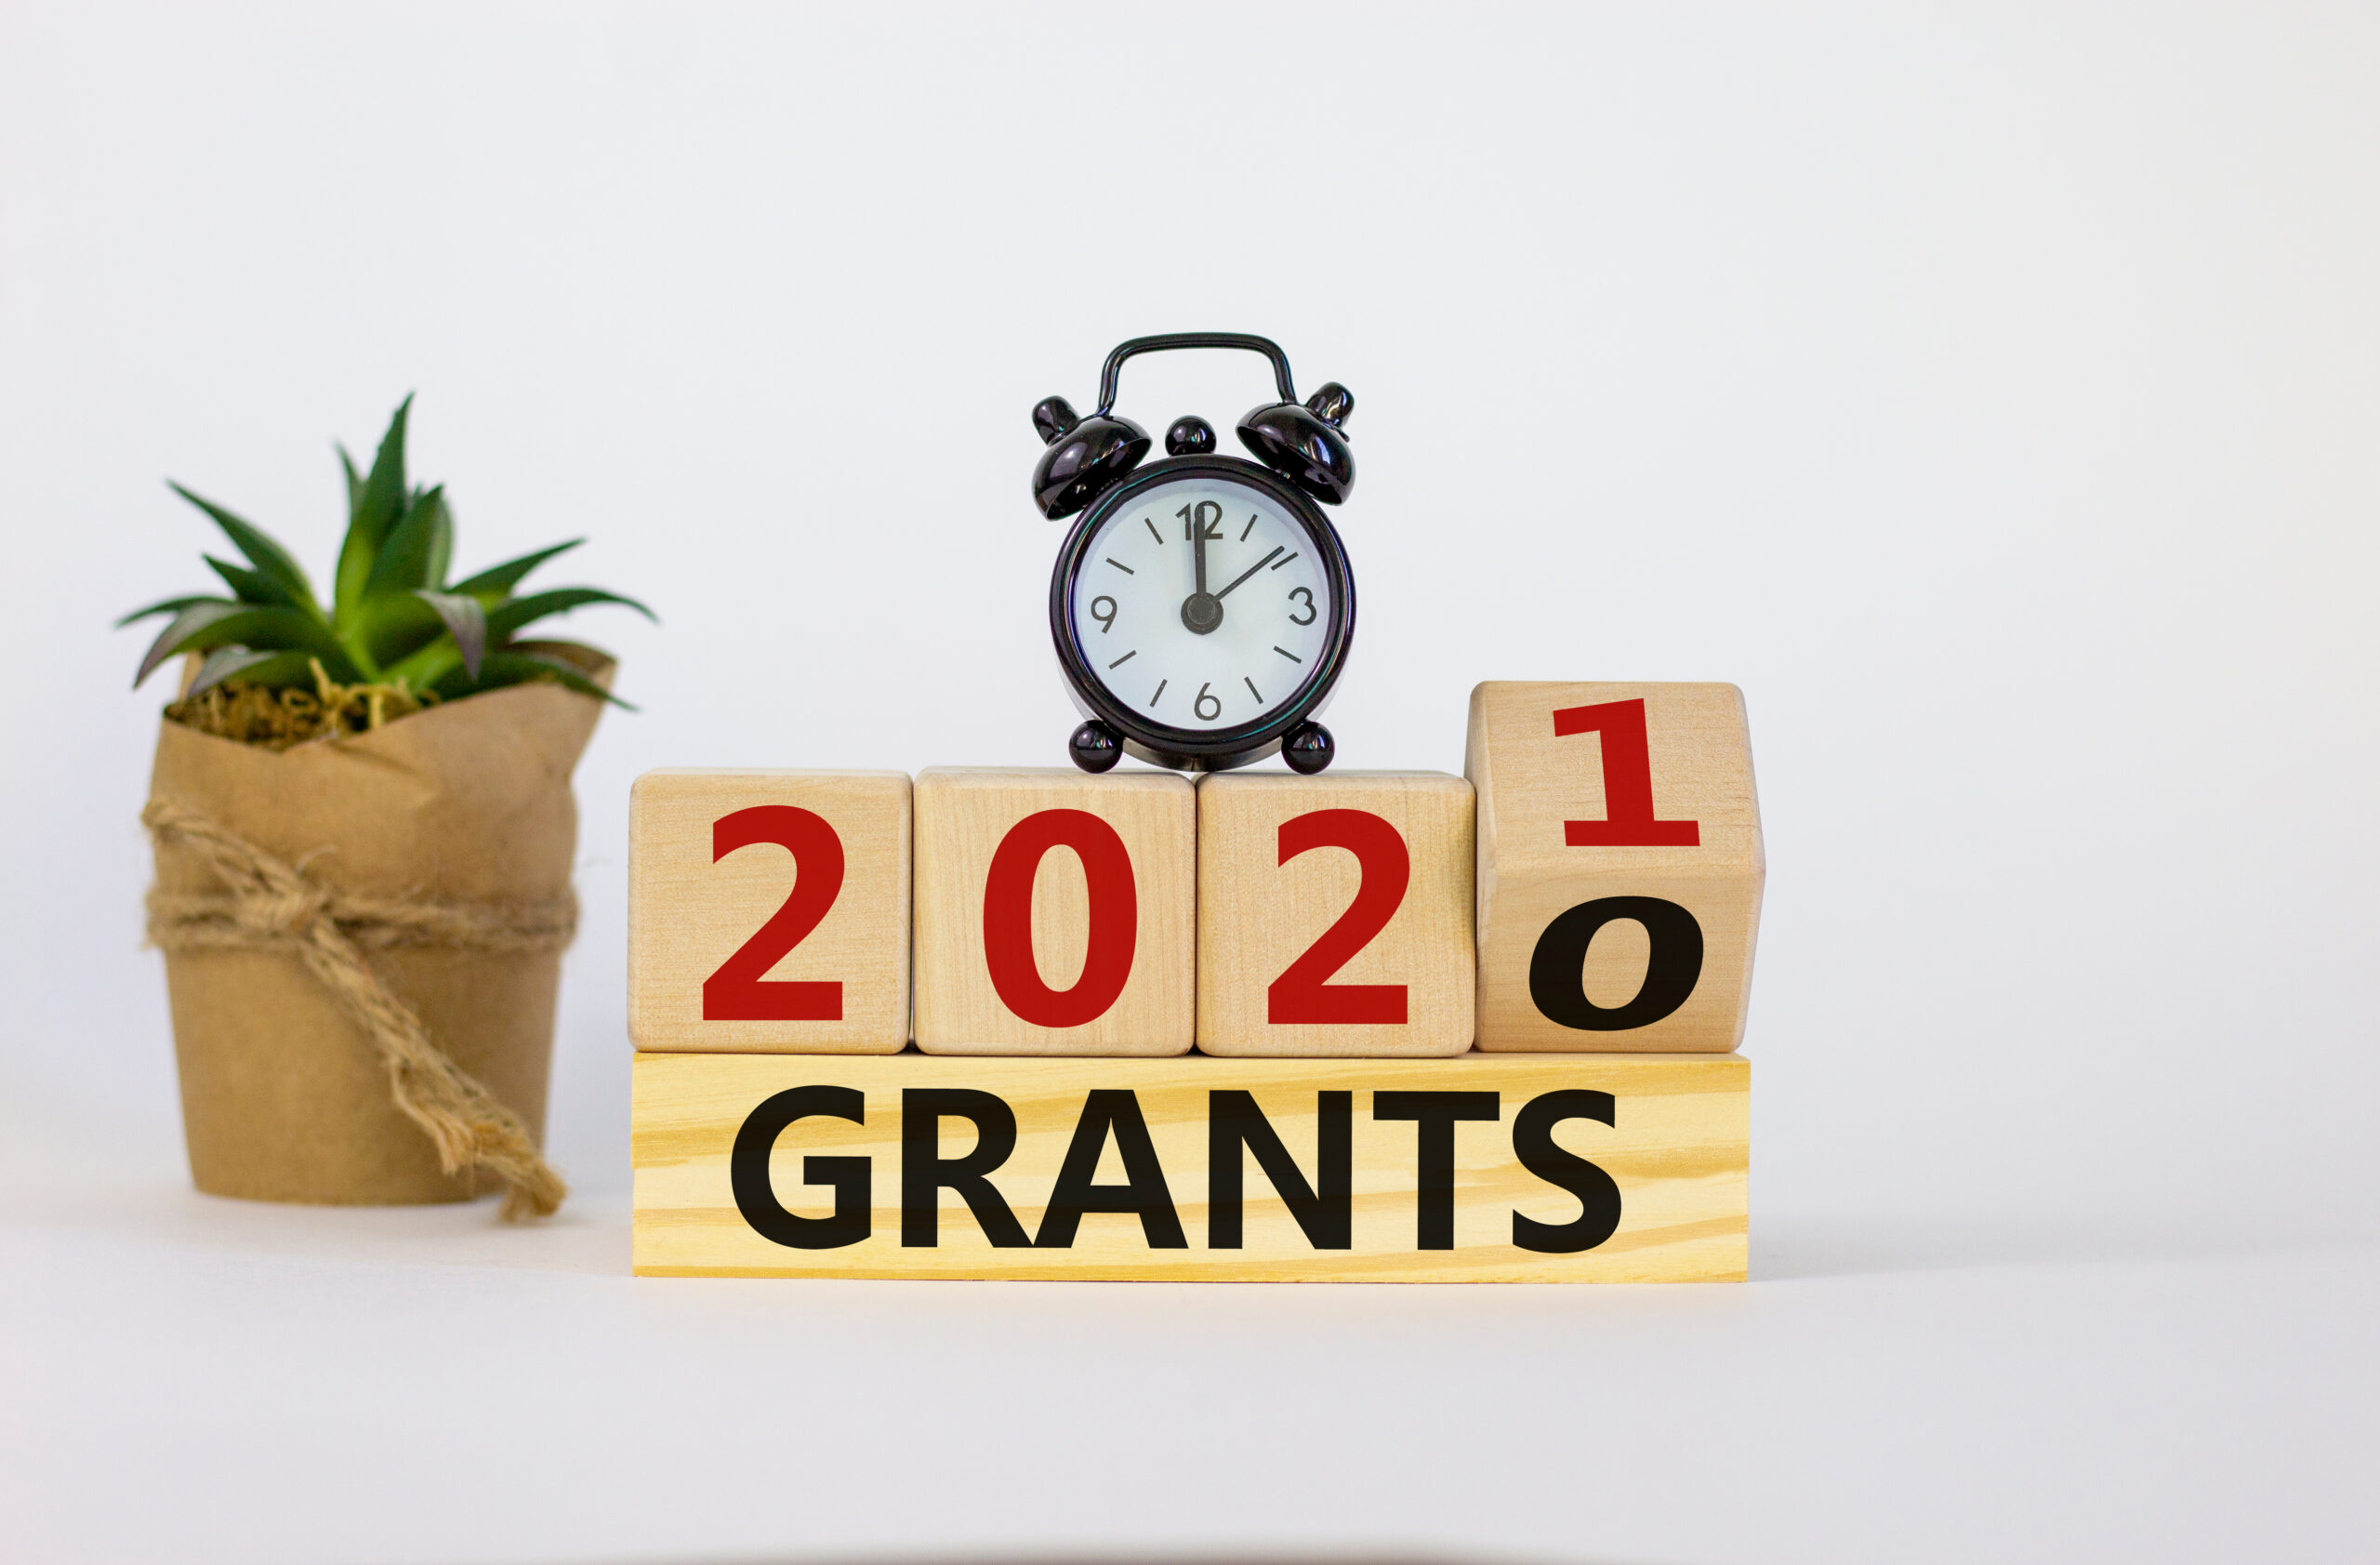 The New Lockdown Grants Who is Eligible and How to Apply.